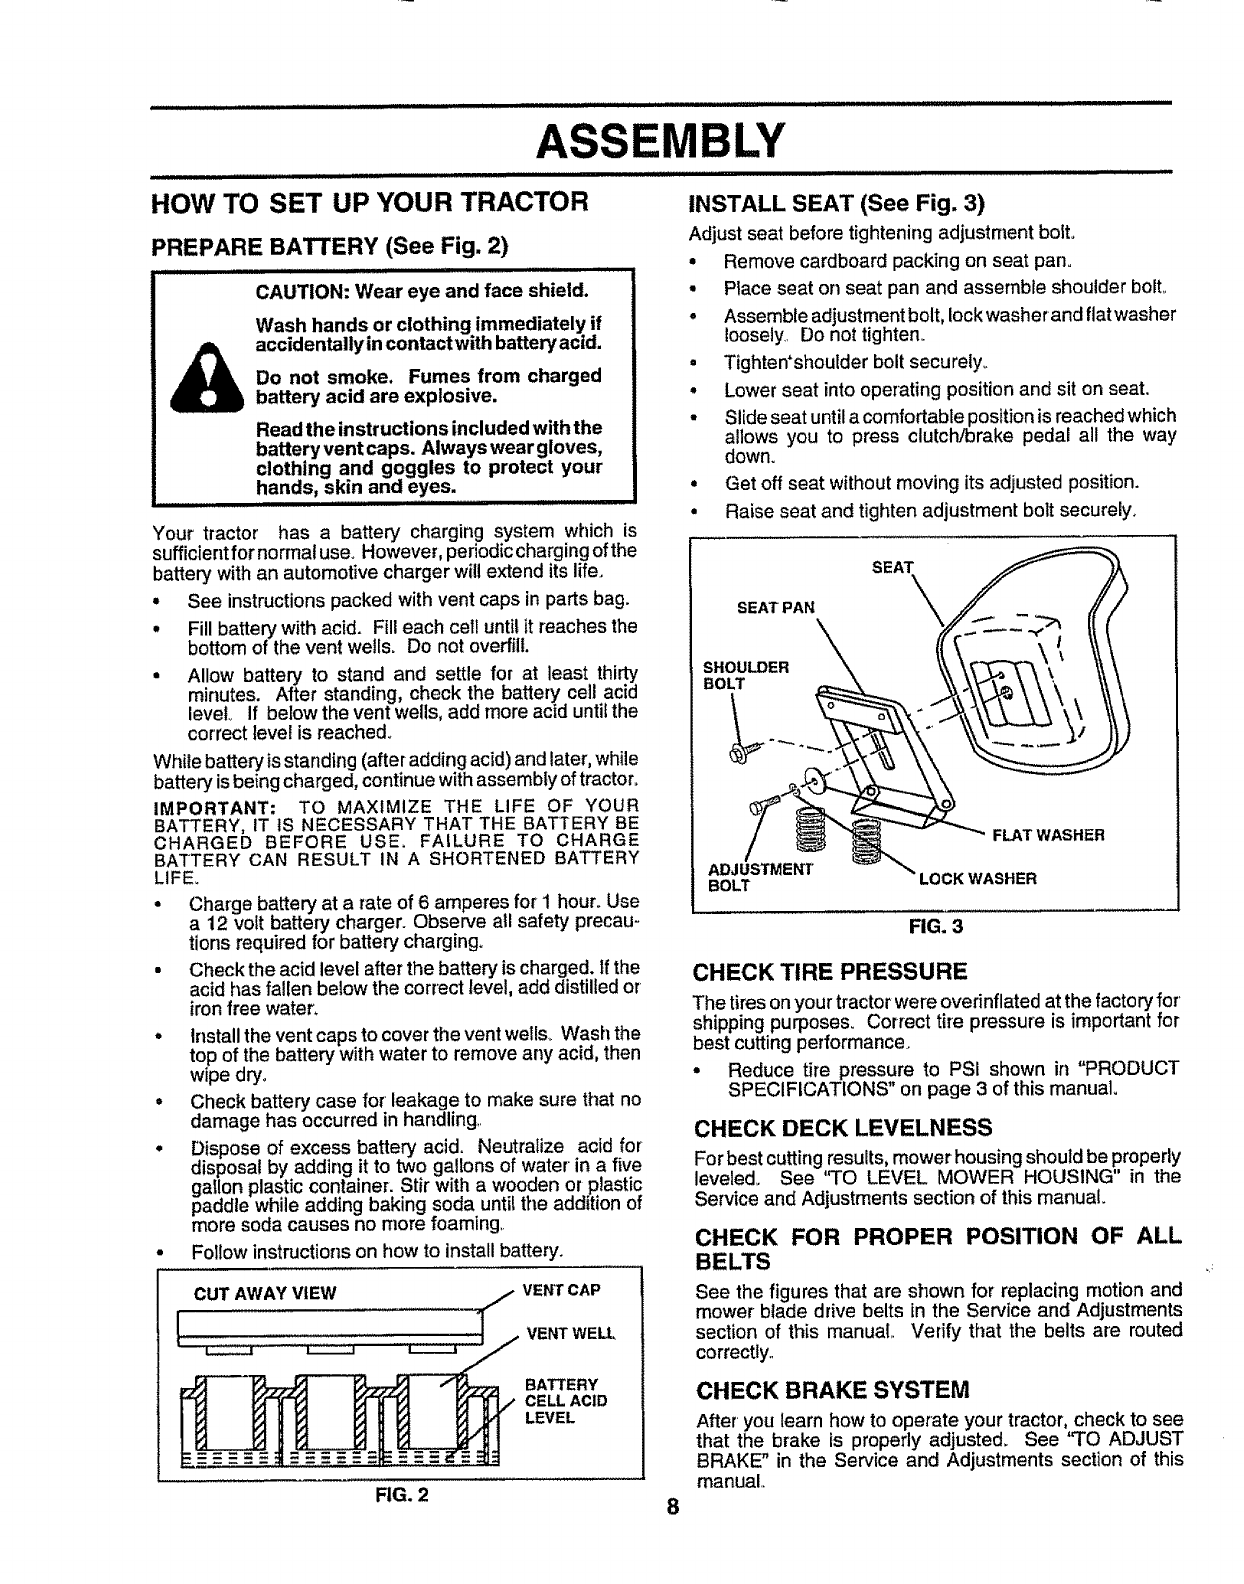 Craftsman 917257632 User Manual Tractor Manuals And Guides 1006757l The Zinc Carbon Dry Cell Or Battery Shown In A Cutaway Diagram Is Jl